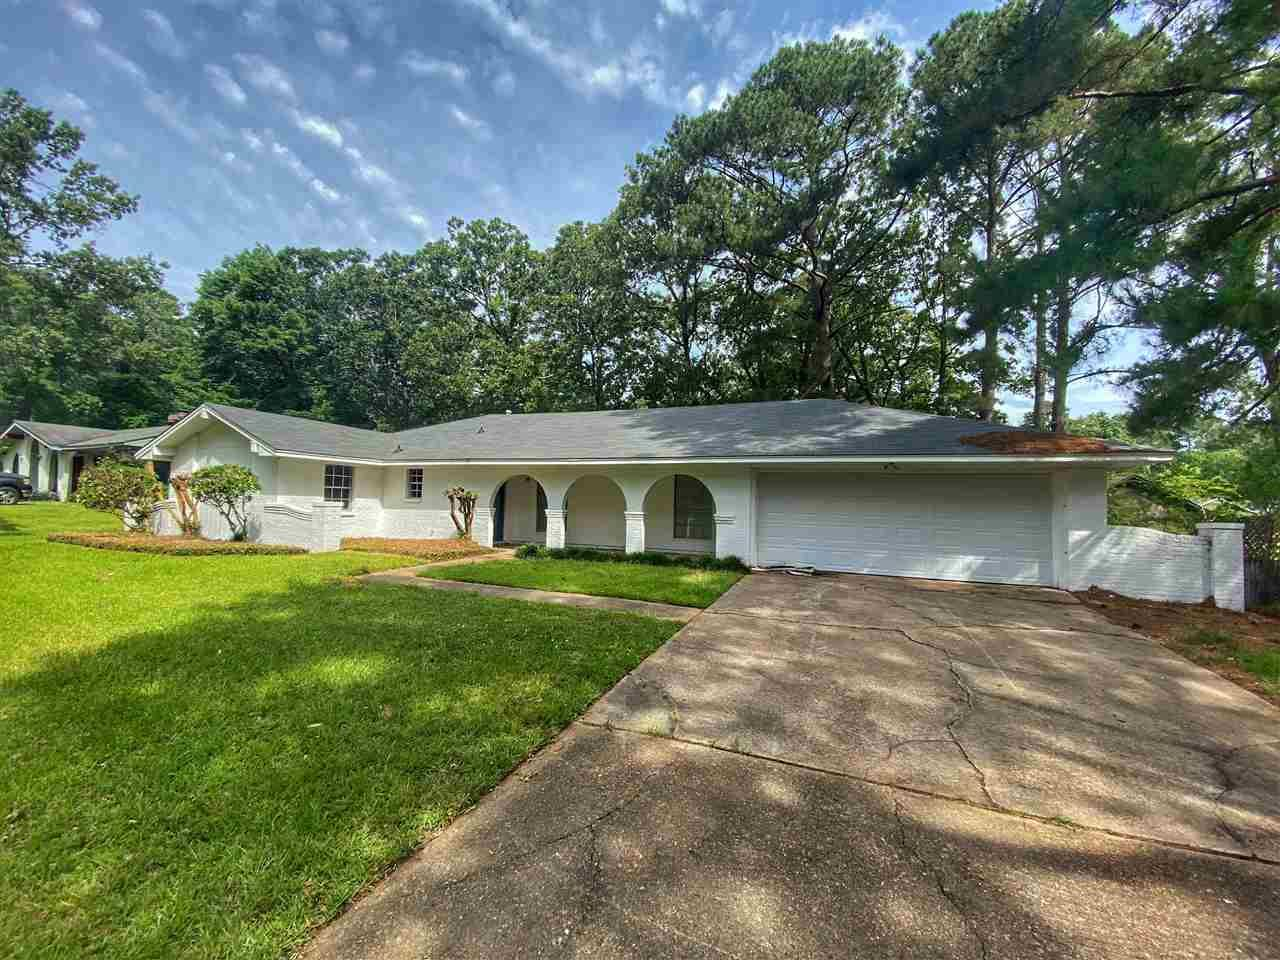 211 FOREST POINT DR, Brandon, MS 39047 - MLS#: 341102